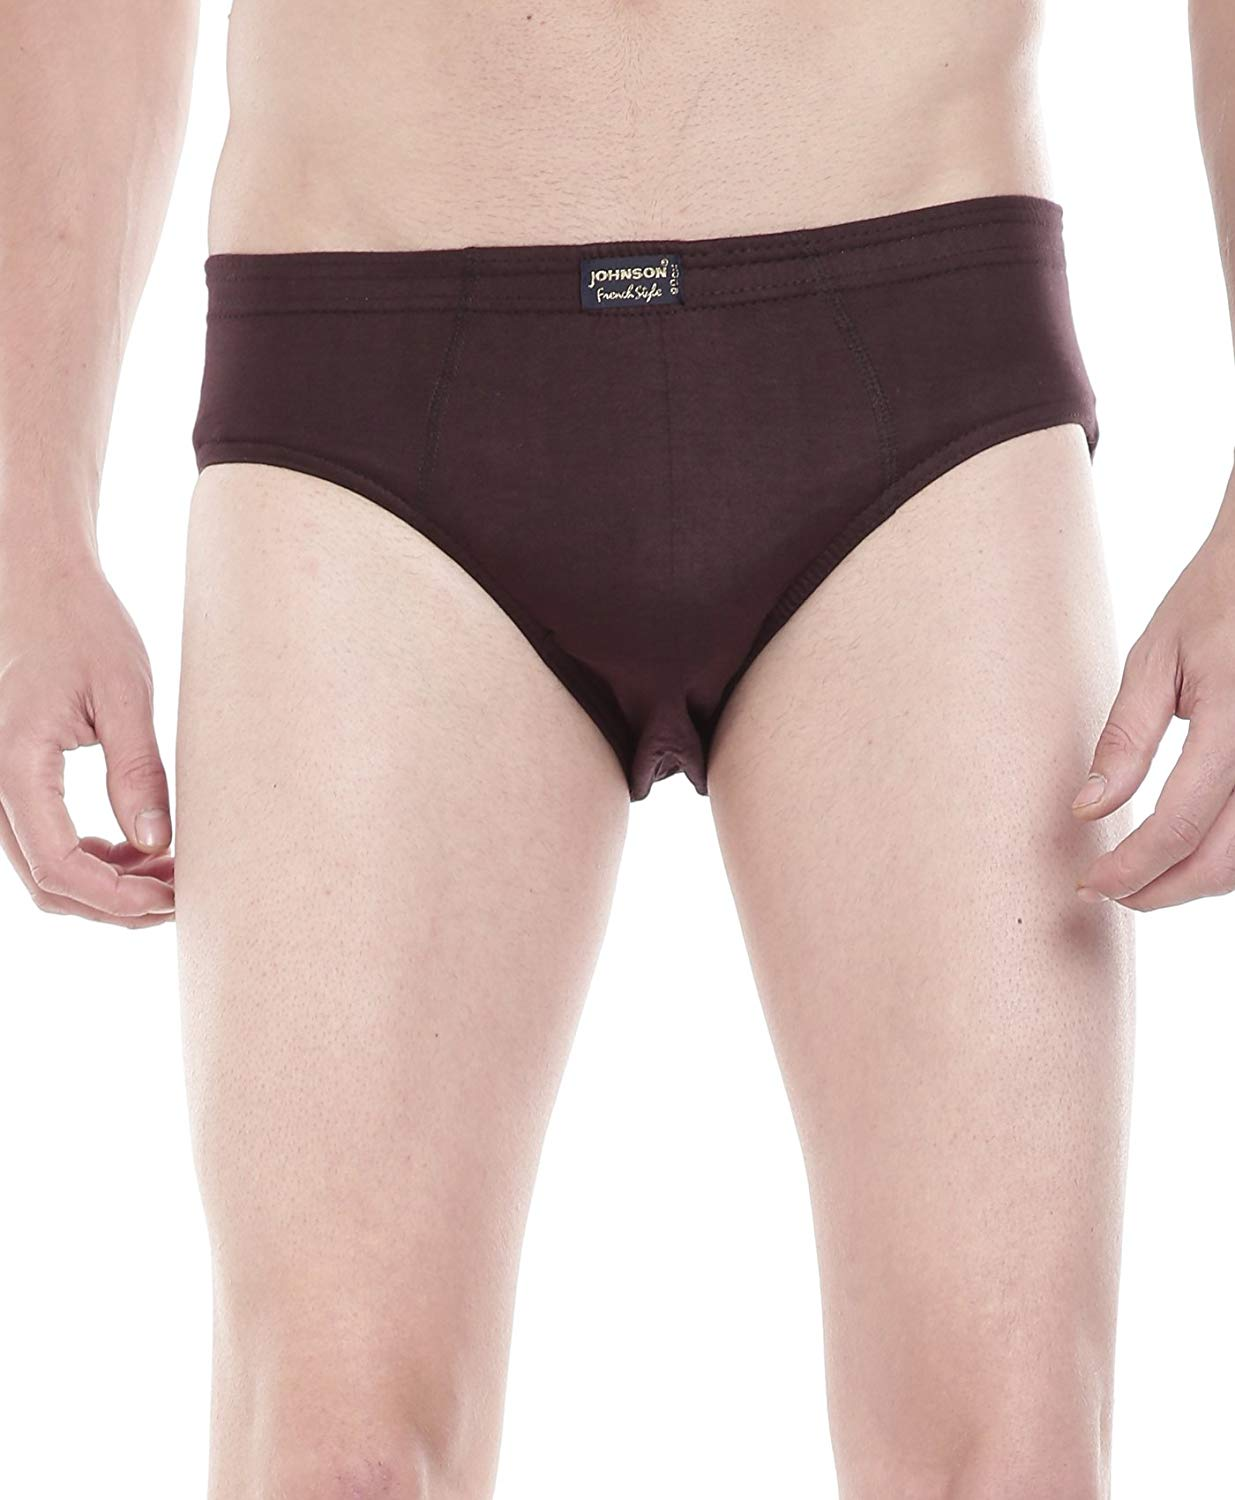 Johnson Multi Color French Men's Brief (Colors May Vary) (Pack of 3)